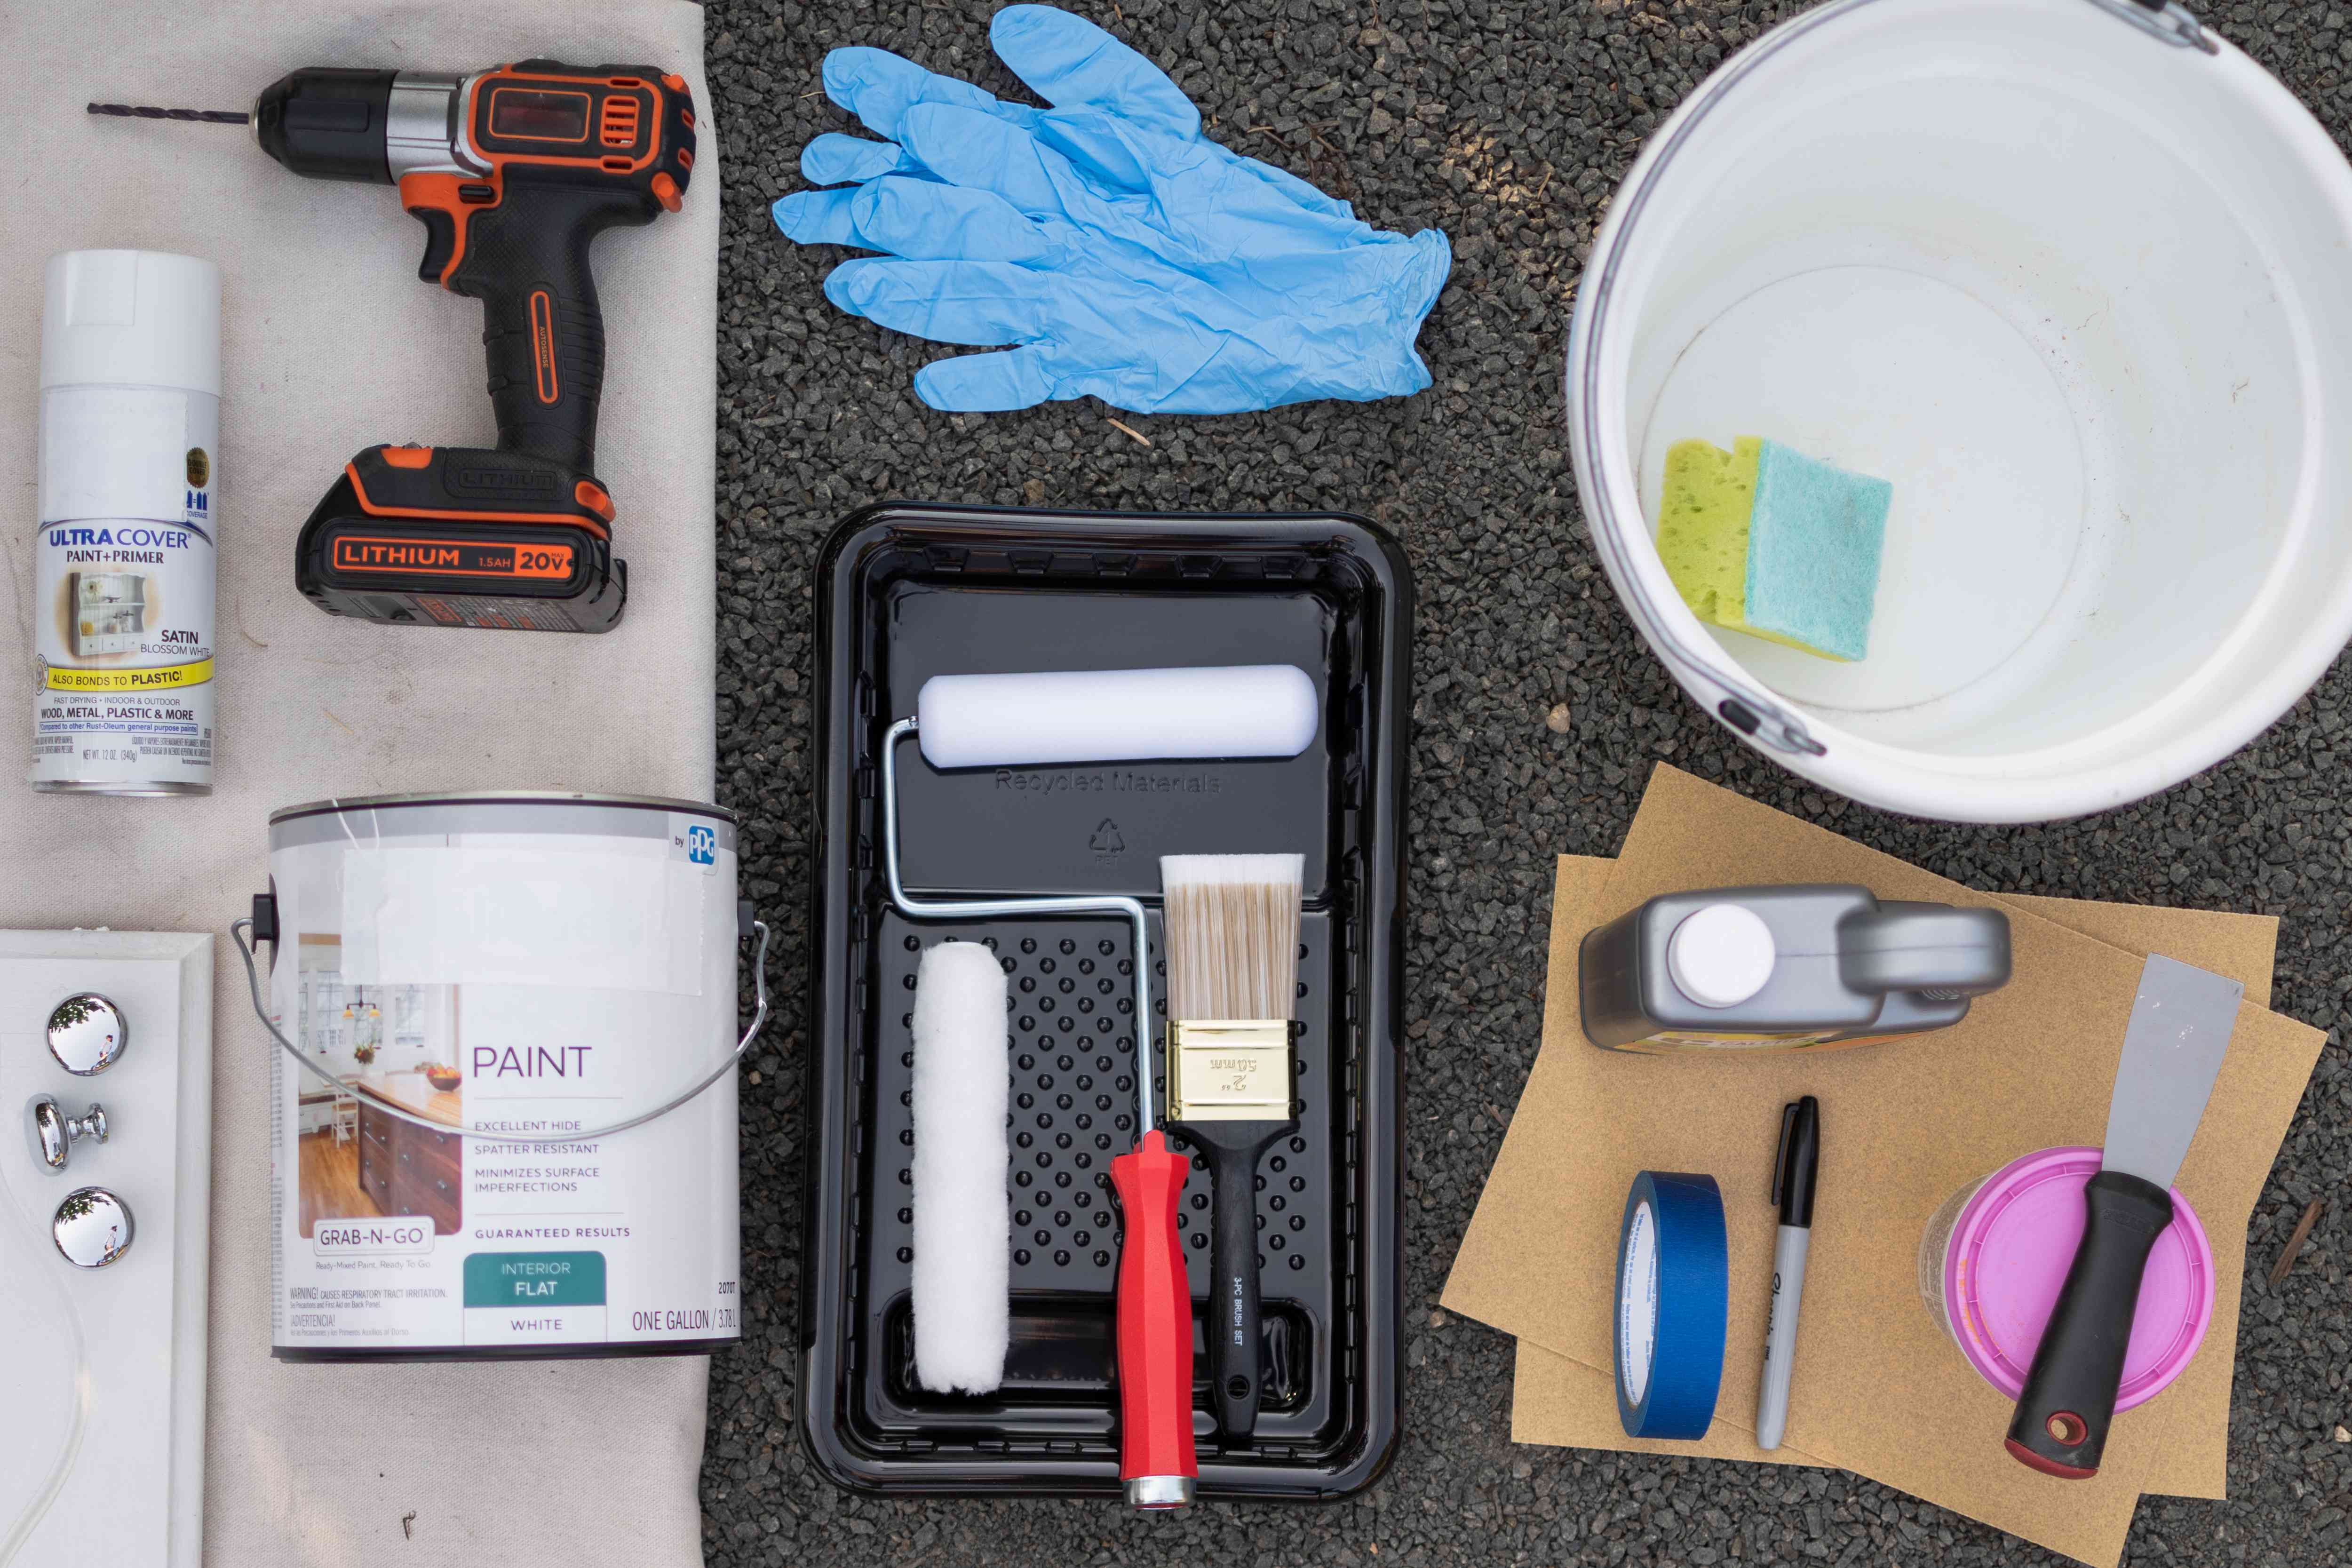 Materials and tools to paint bathroom cabinets